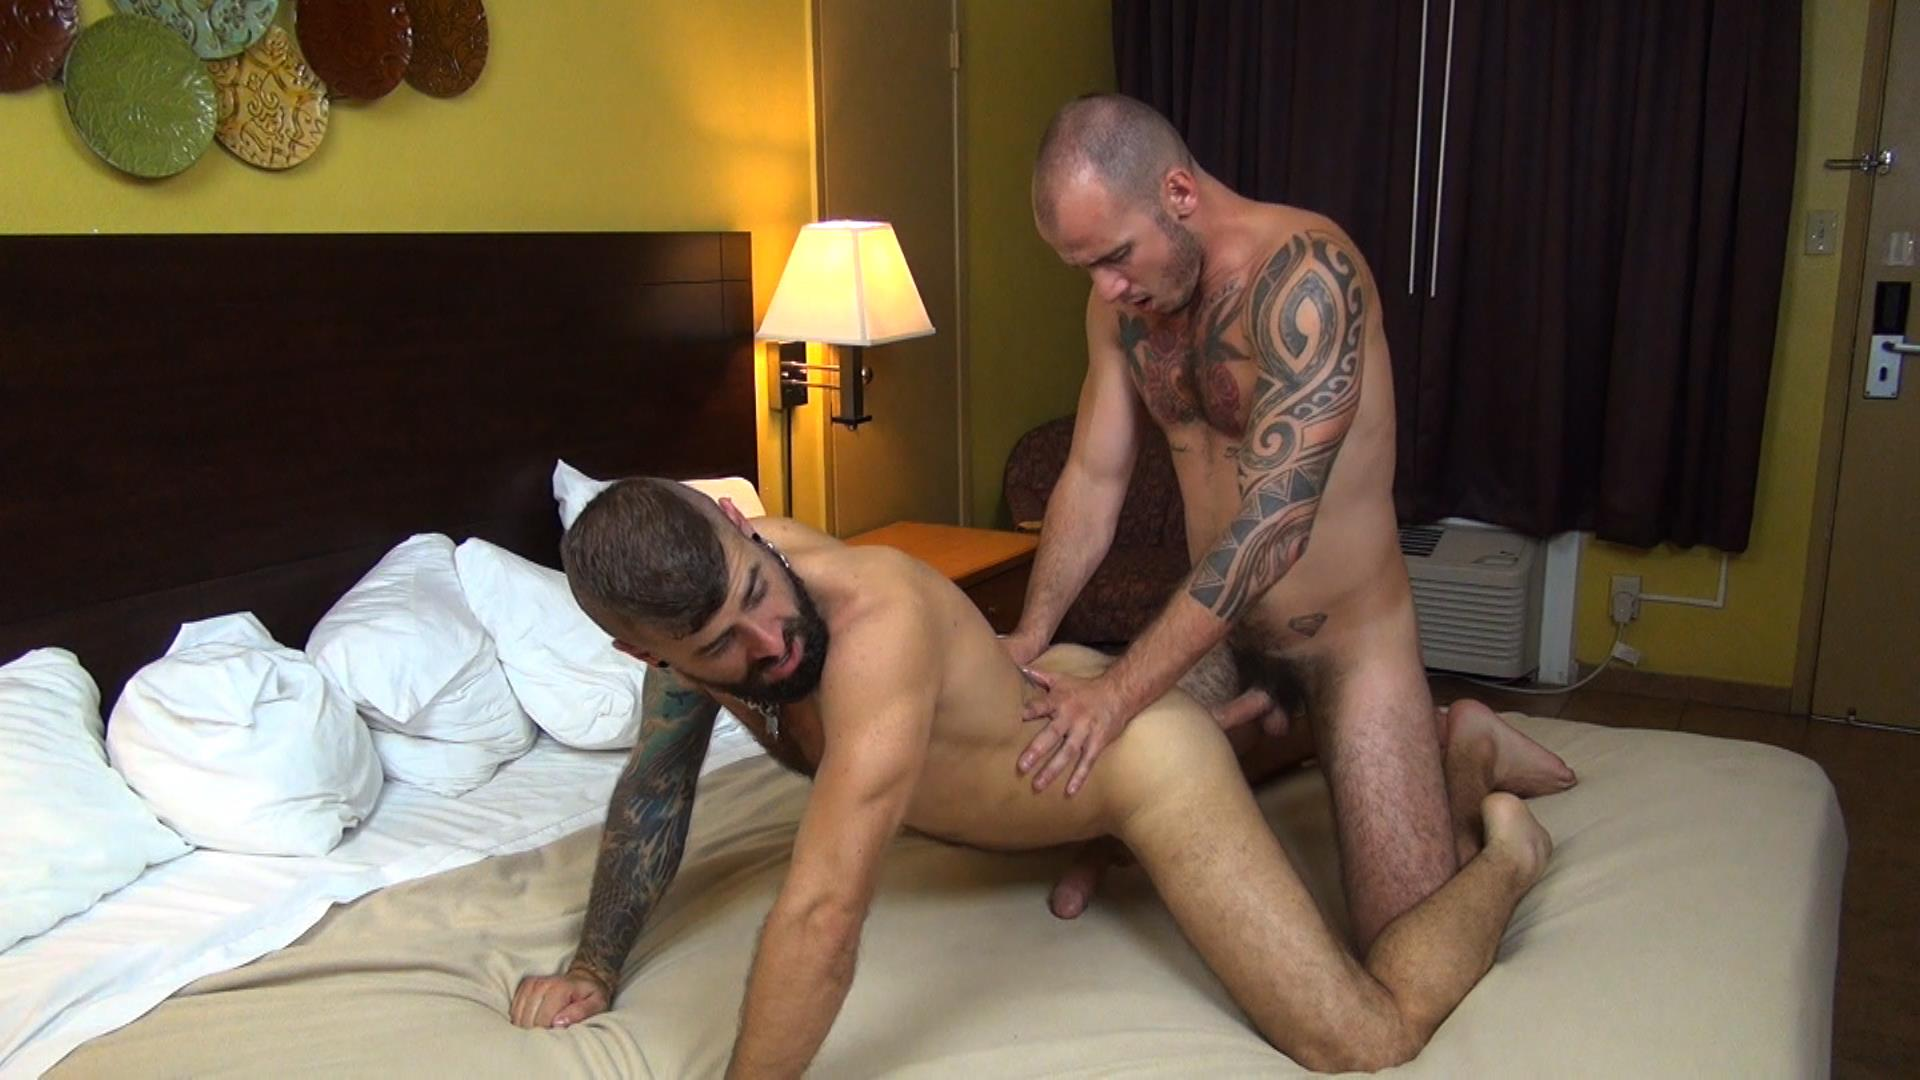 Raw-Fuck-Club-Jon-Shield-and-Cam-Christou-Guys-Fucking-Bareback-Sex-Tape-In-A-Sleazy-Hotel-Amateur-Gay-Porn-6 Jon Shield and Cam Christou Fucking Bareback In A Sleazy Motel